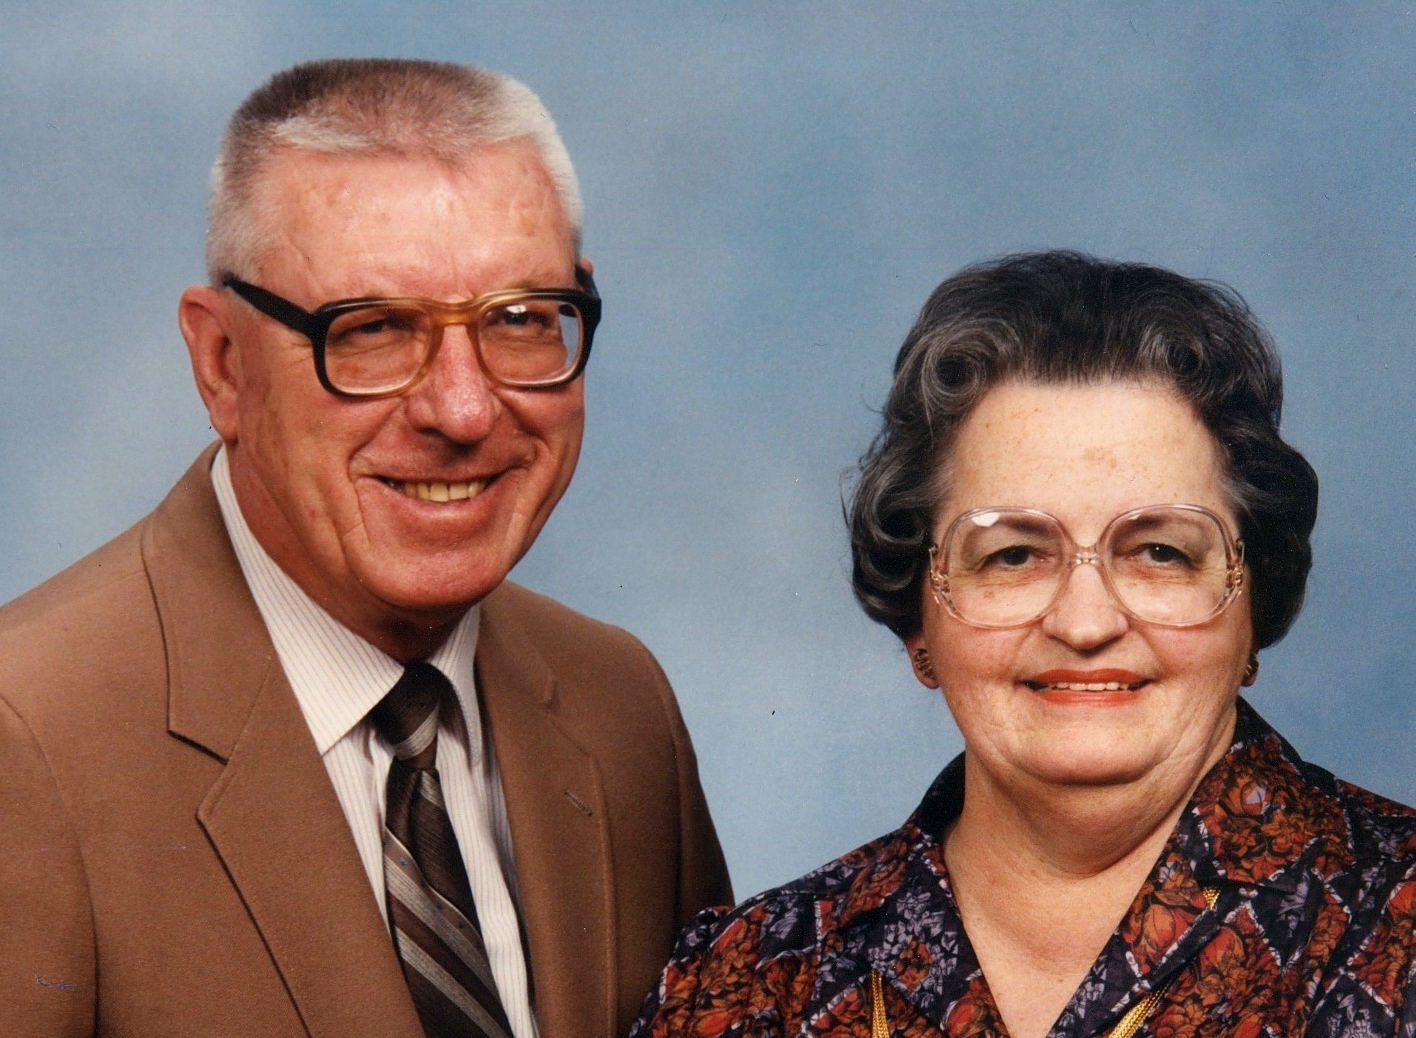 Joe and Mildred Pankaskie